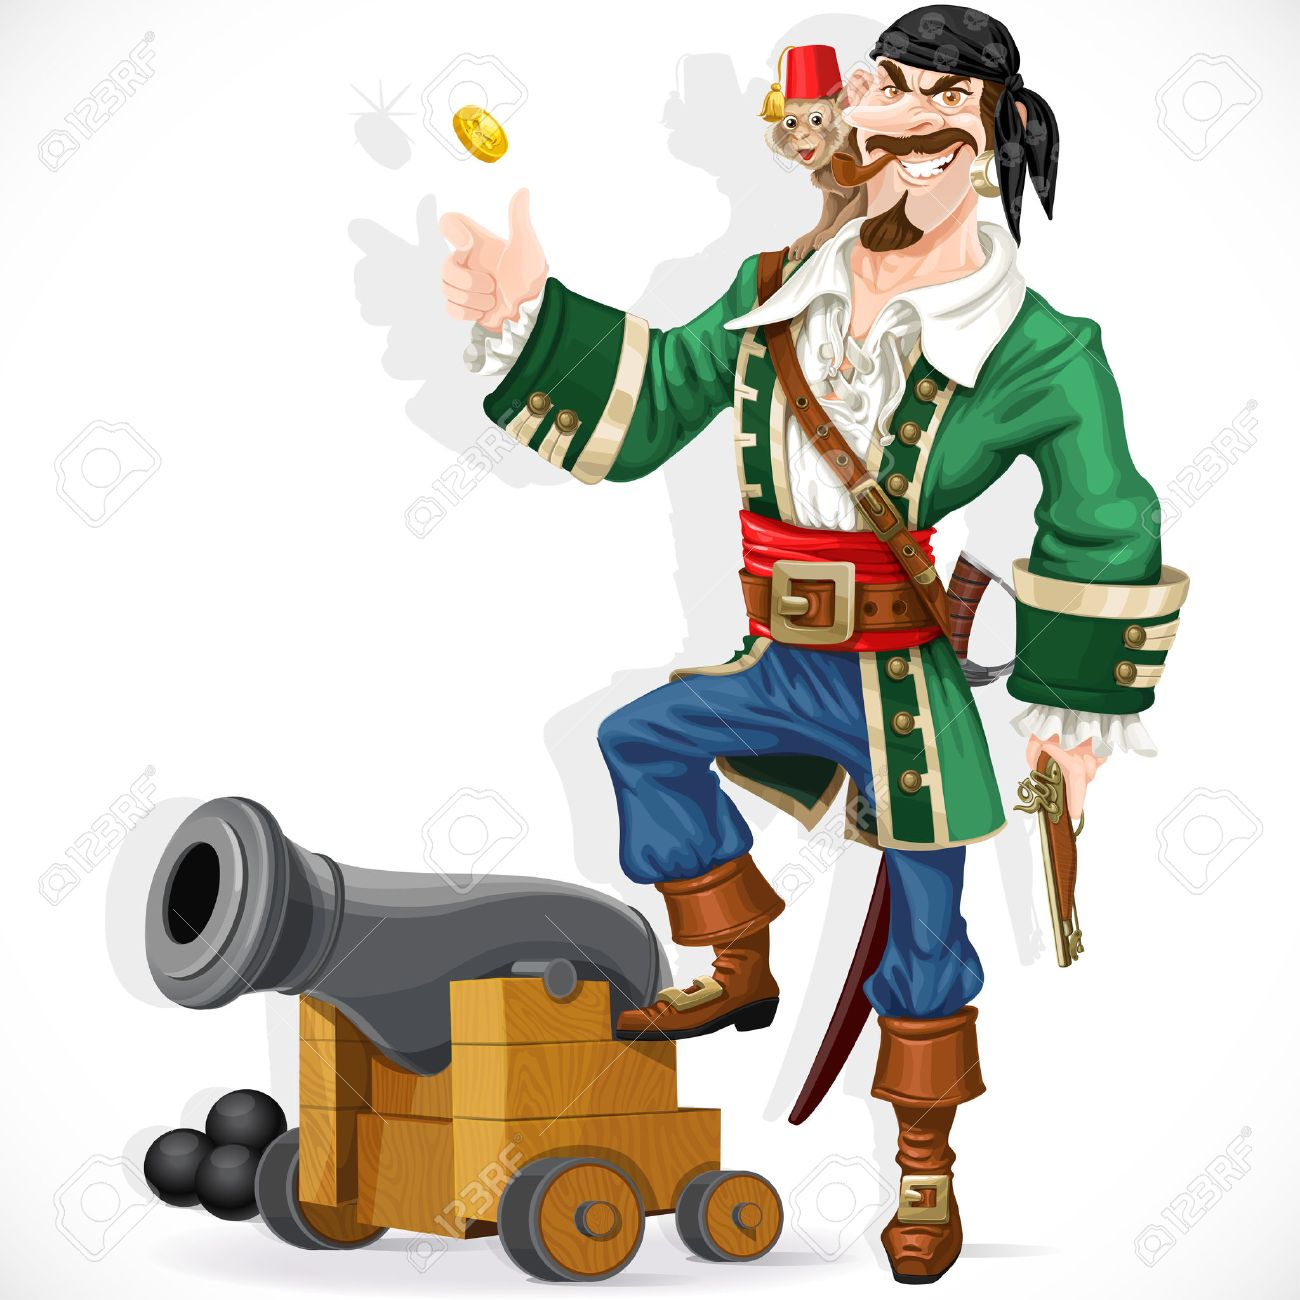 pirate musket images u0026 stock pictures royalty free pirate musket